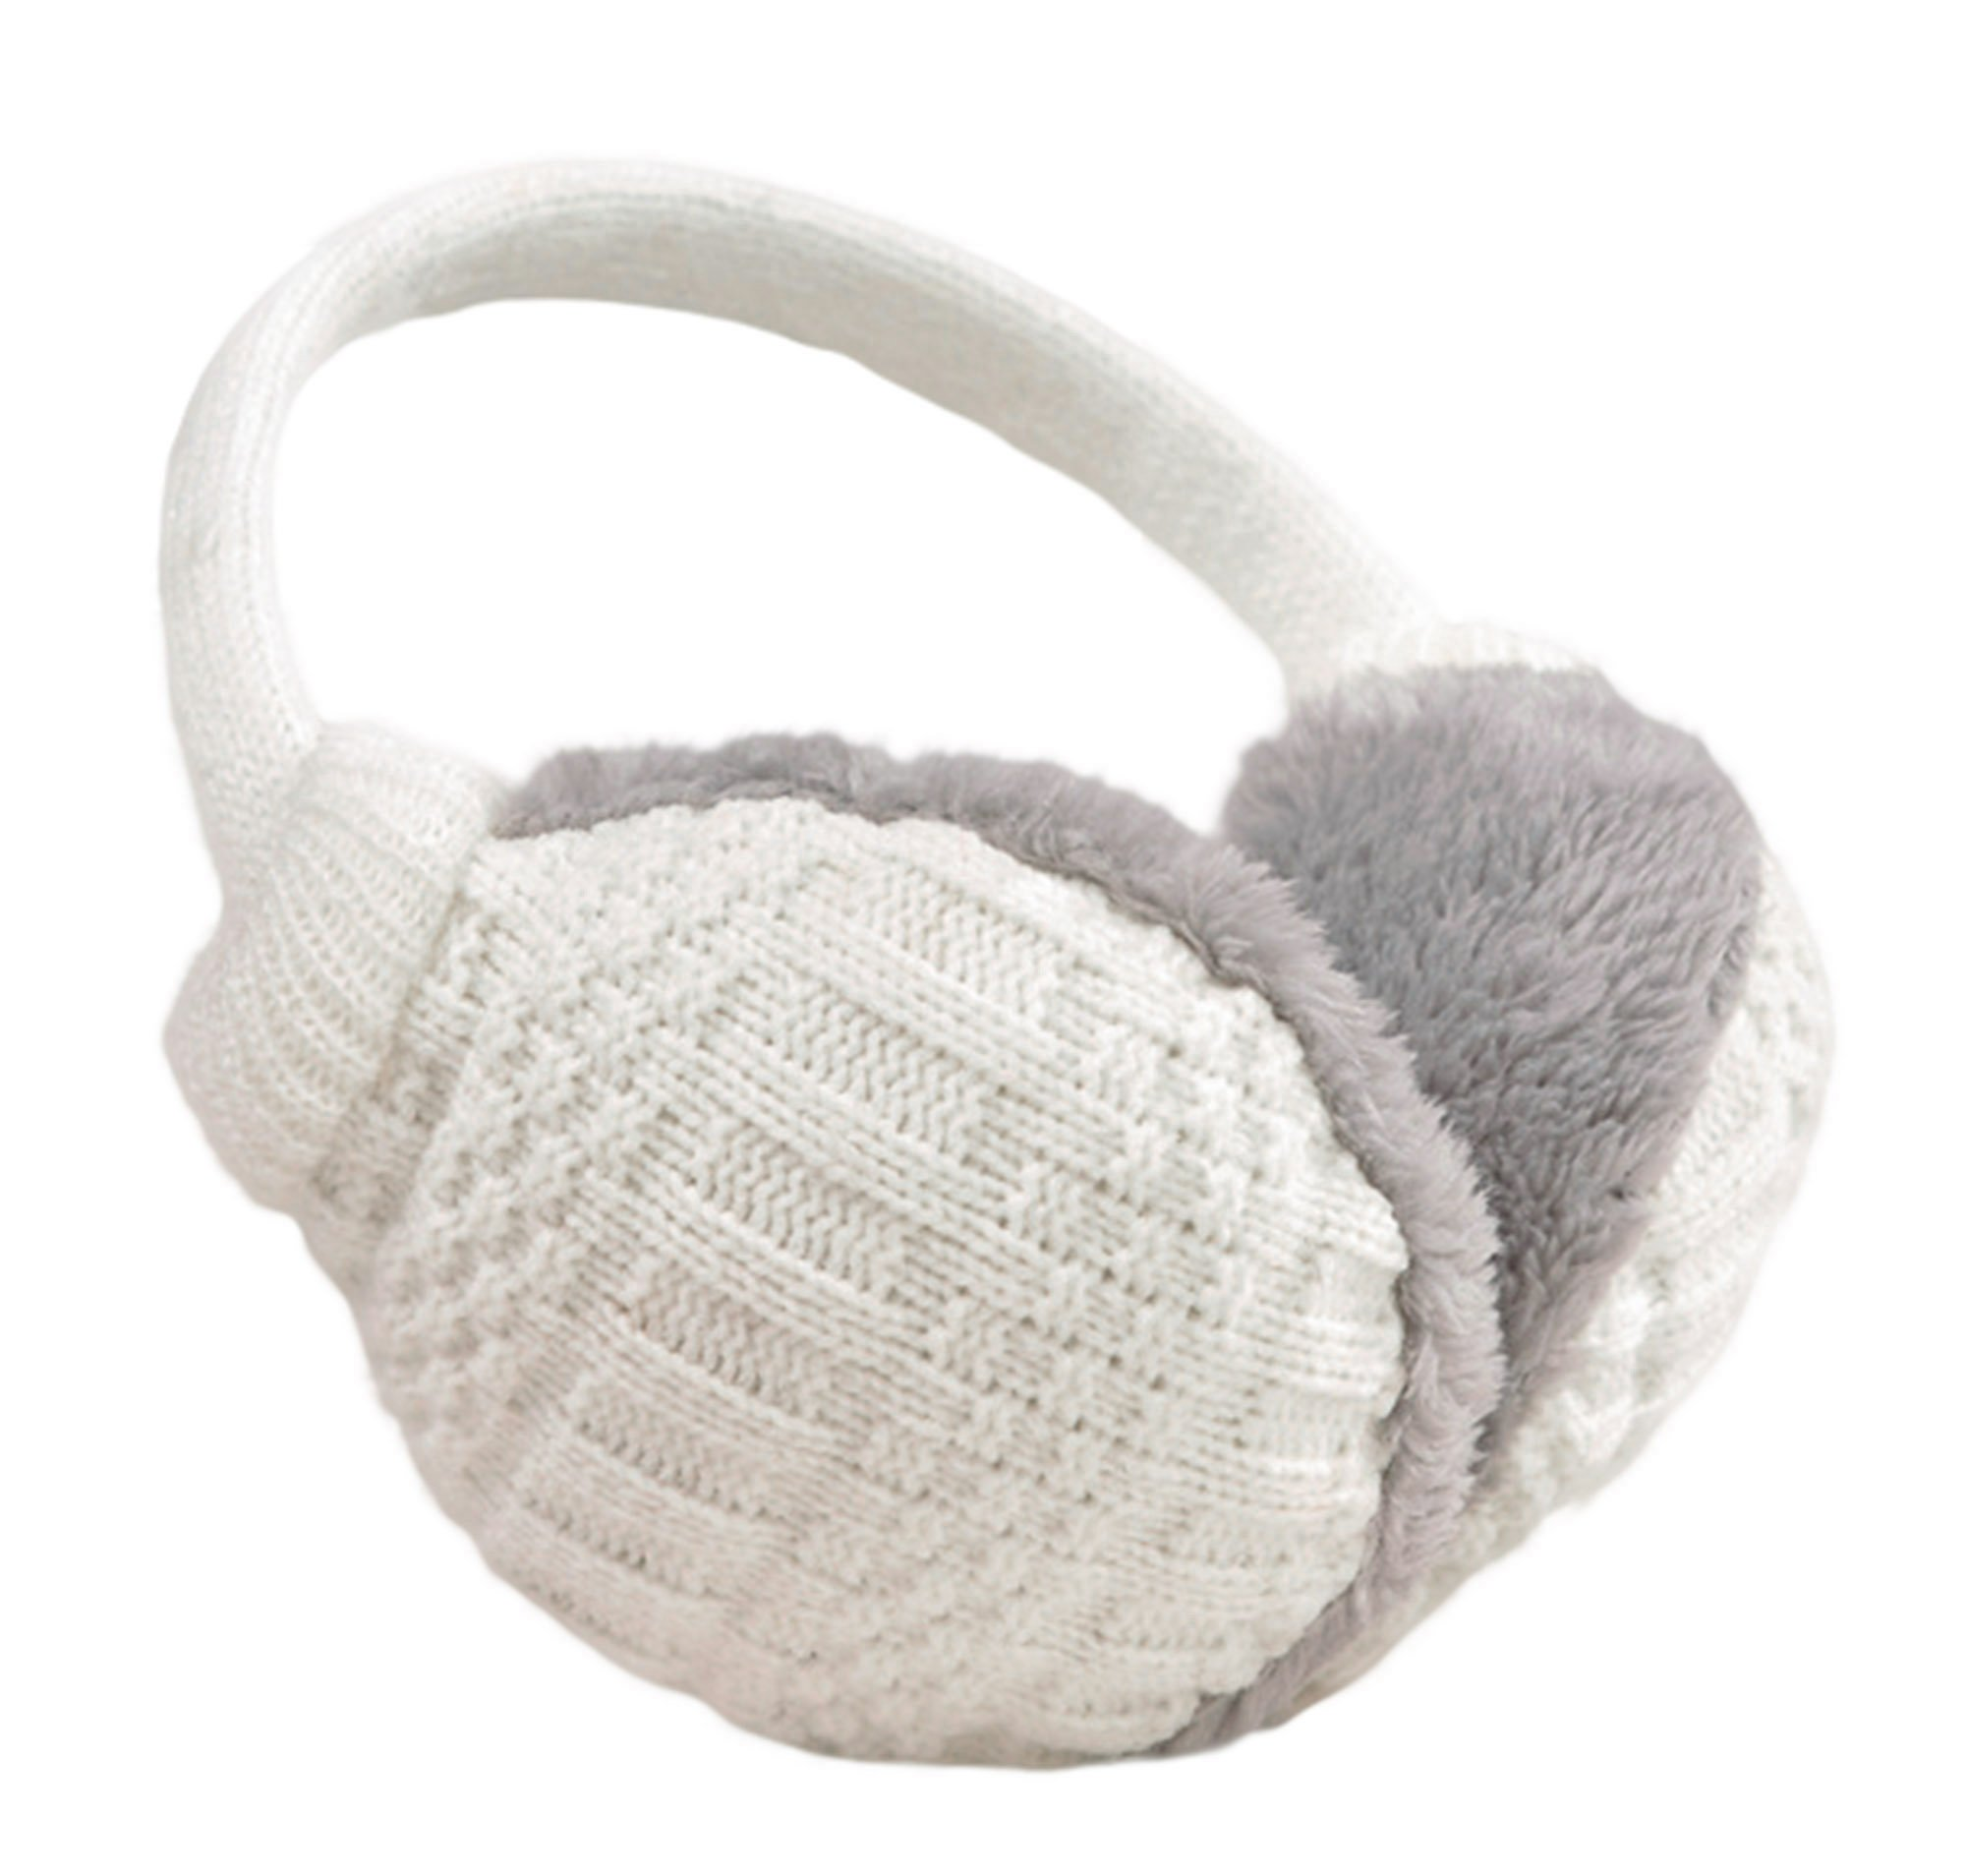 Knolee Unisex Knitting EarMuffs Faux Furry Earwarmer Winter Outdoor EarMuffs,White